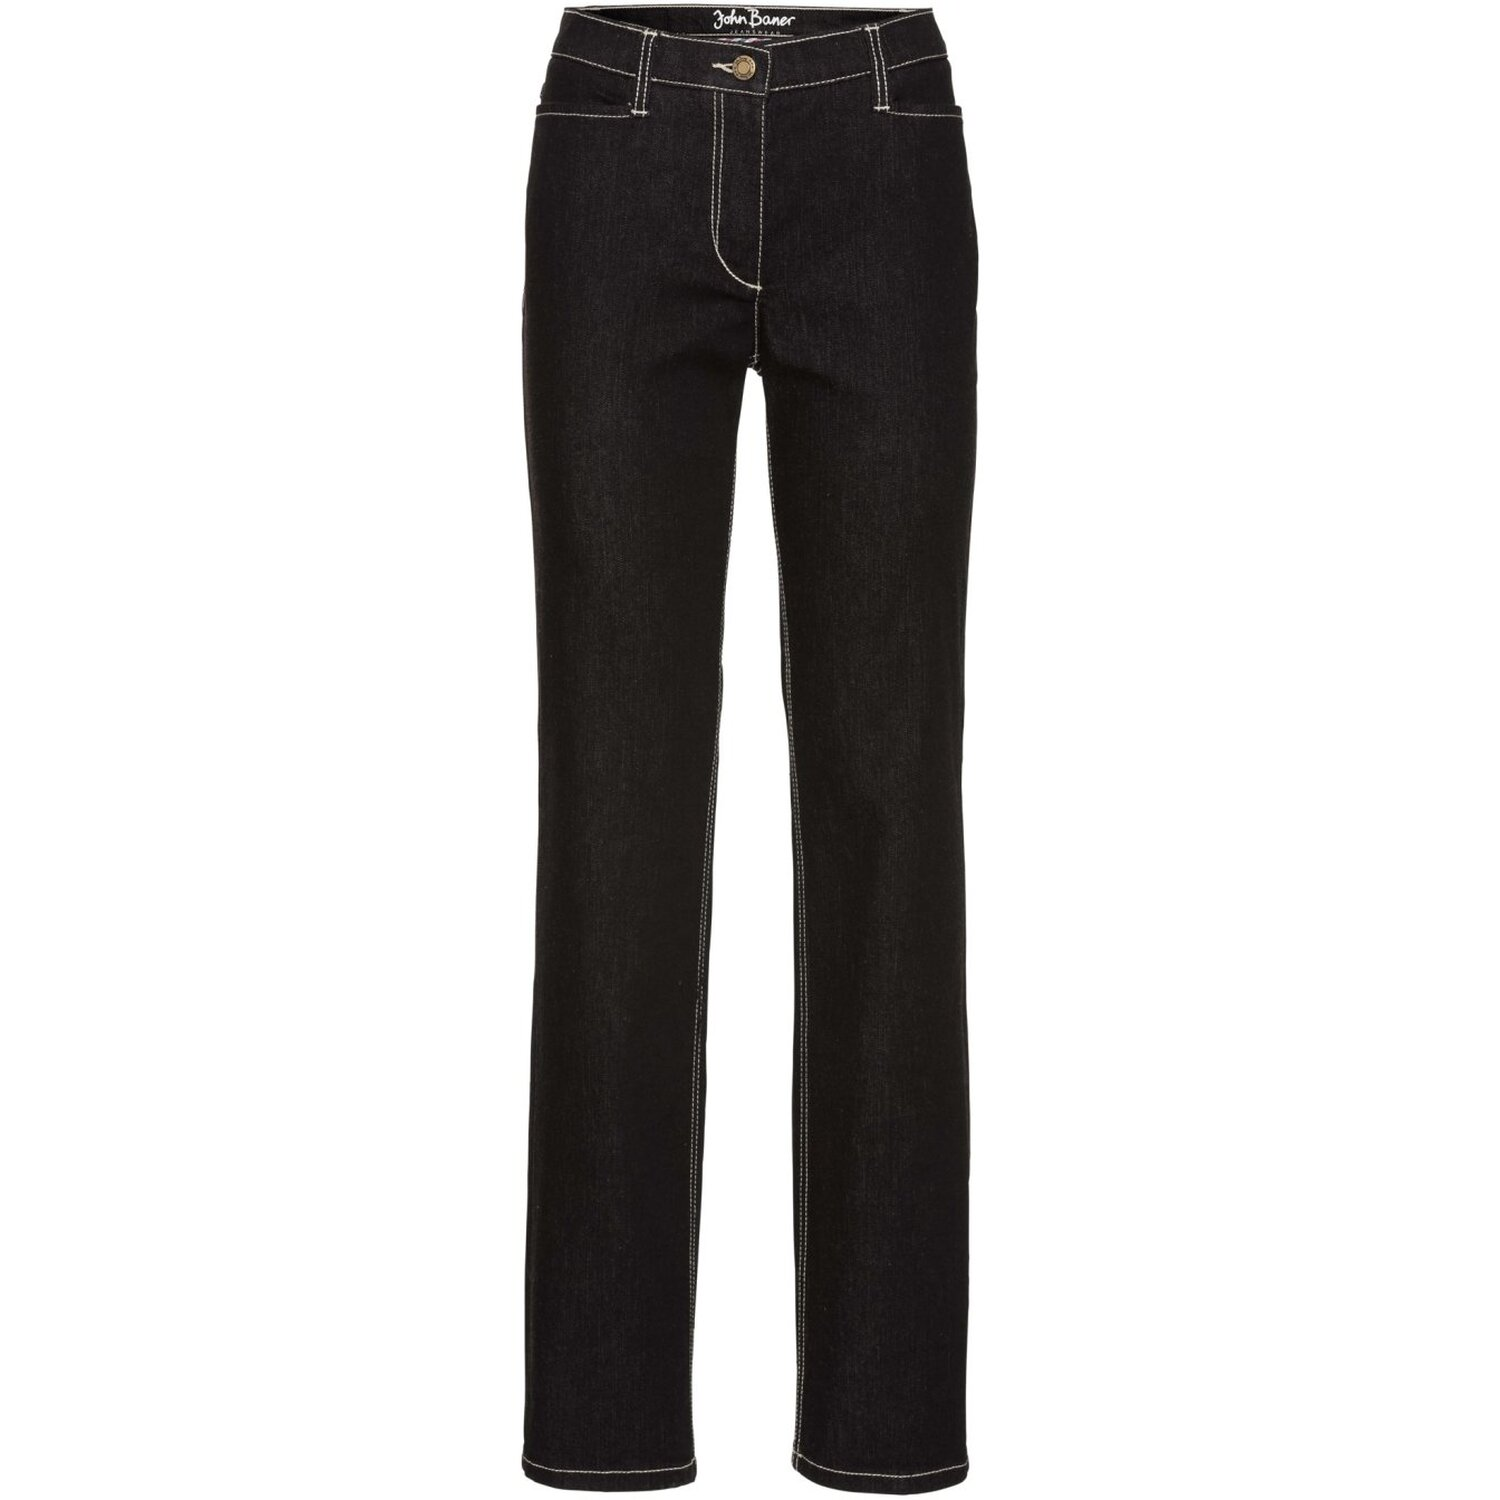 Damen Figurformende Authentic-Stretchjeans STRAIGHT, in Schwarz